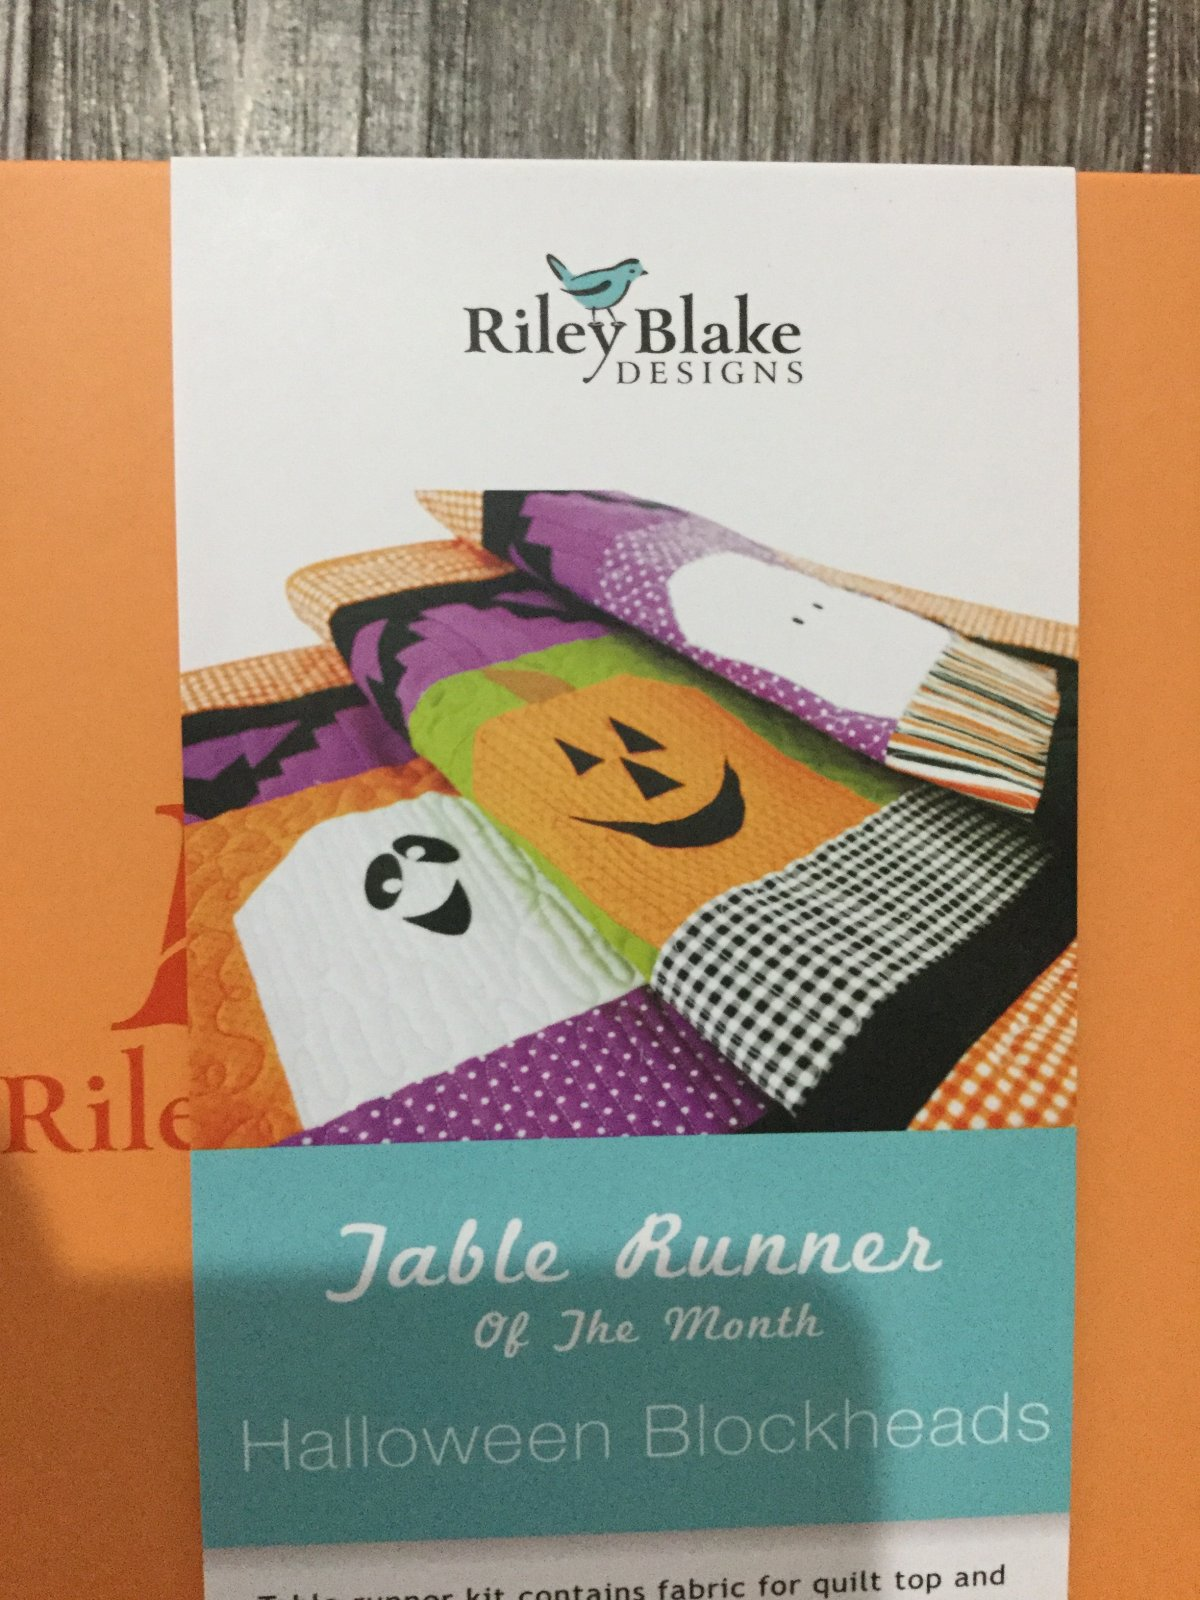 Table Runner of the Month October